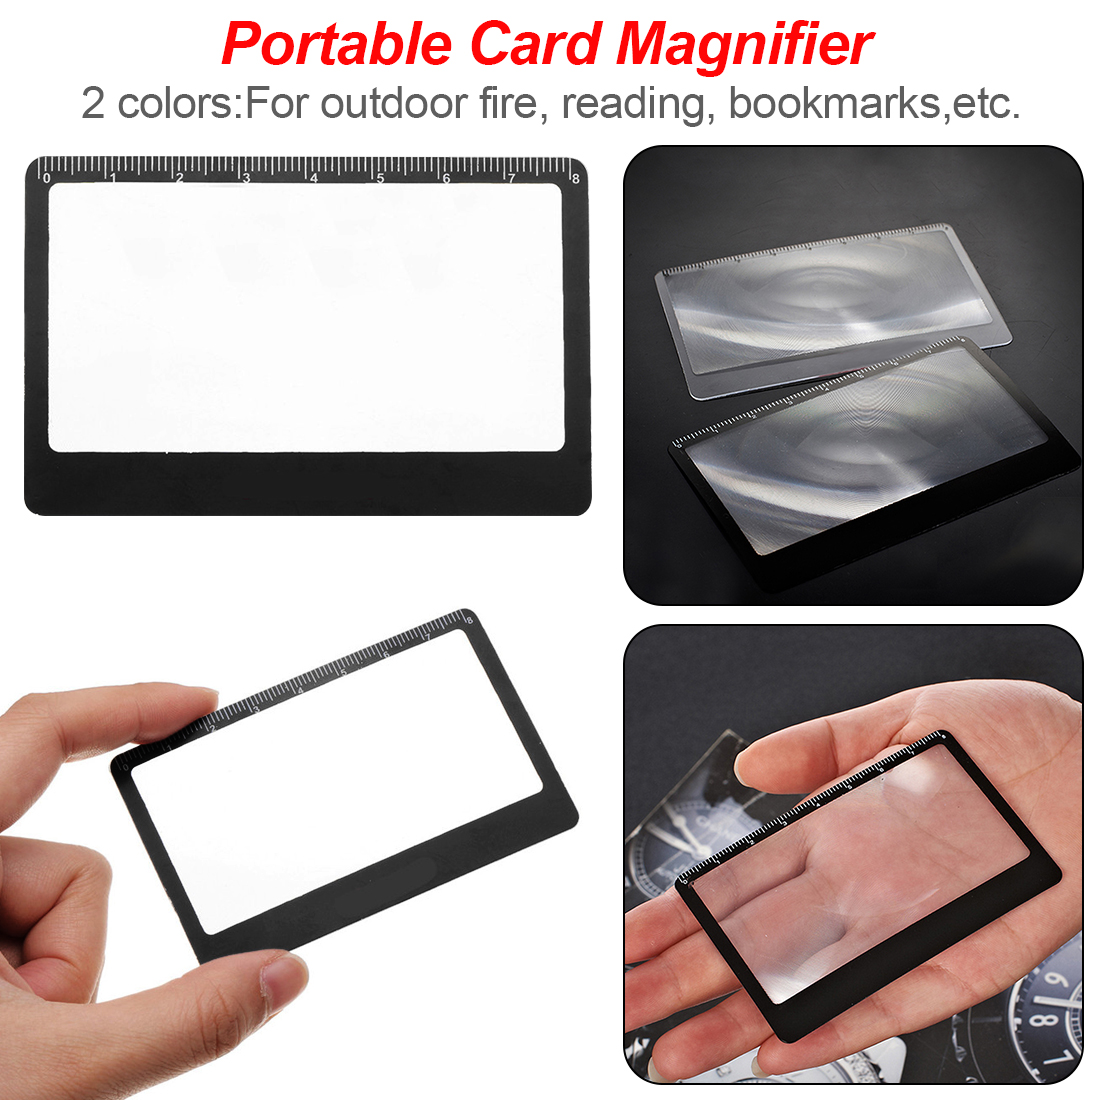 3 X Book Page Magnification 8.5X5.5cm Convenient Flat PVC Magnifier Sheet Magnifying Reading Glass Lens